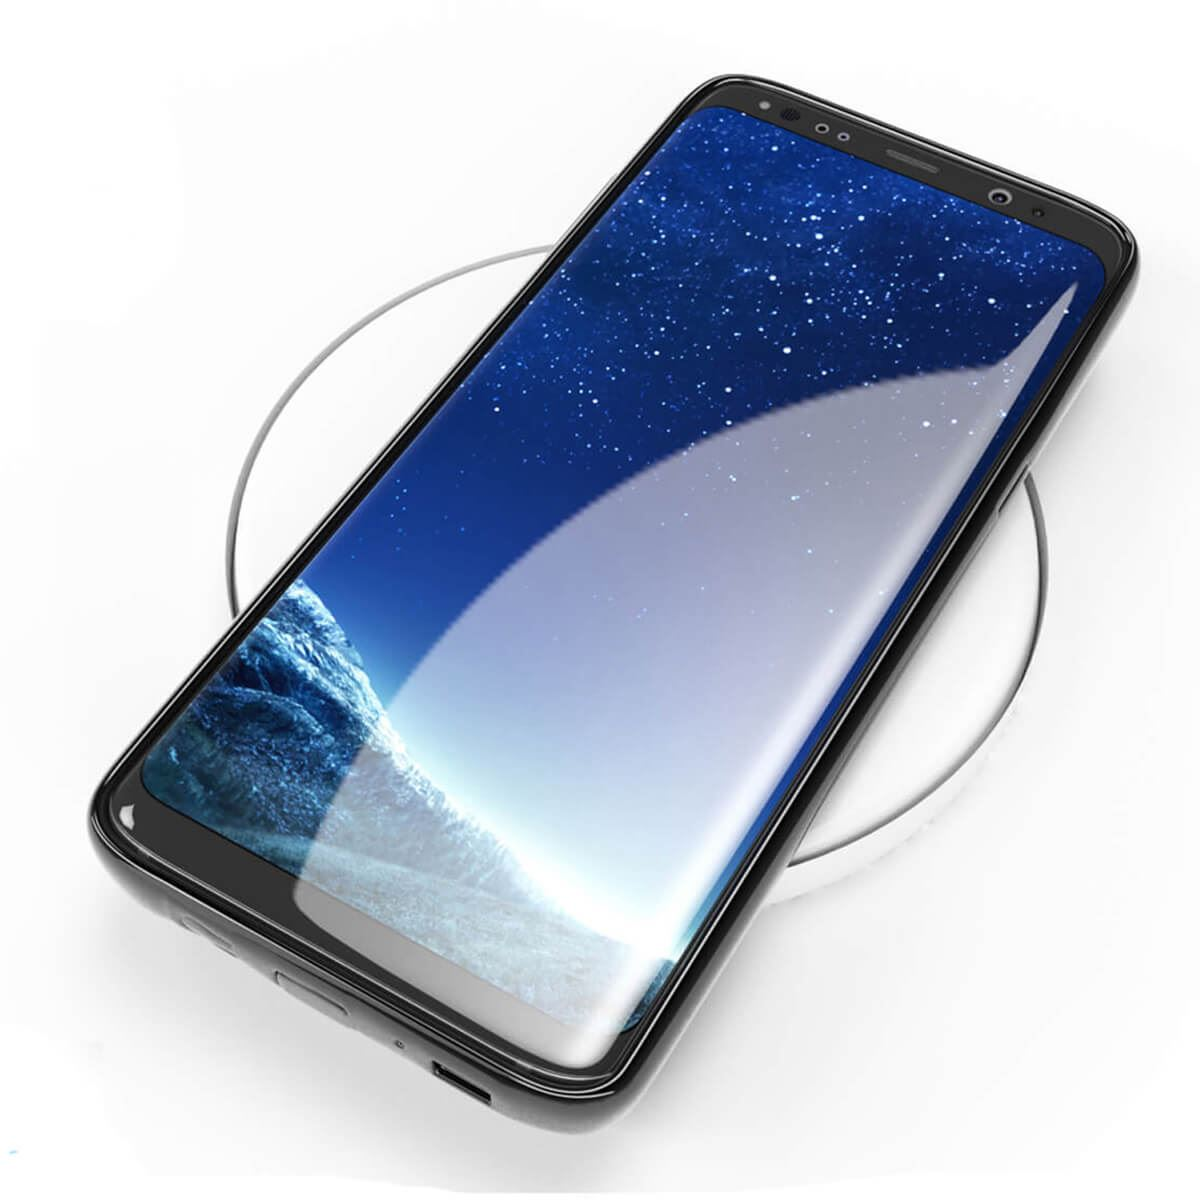 Shockproof-TPU-Bumper-Case-Samsung-Galaxy-S8-Plus-Note-8-Gel-Crystal-Clear-Cover thumbnail 7